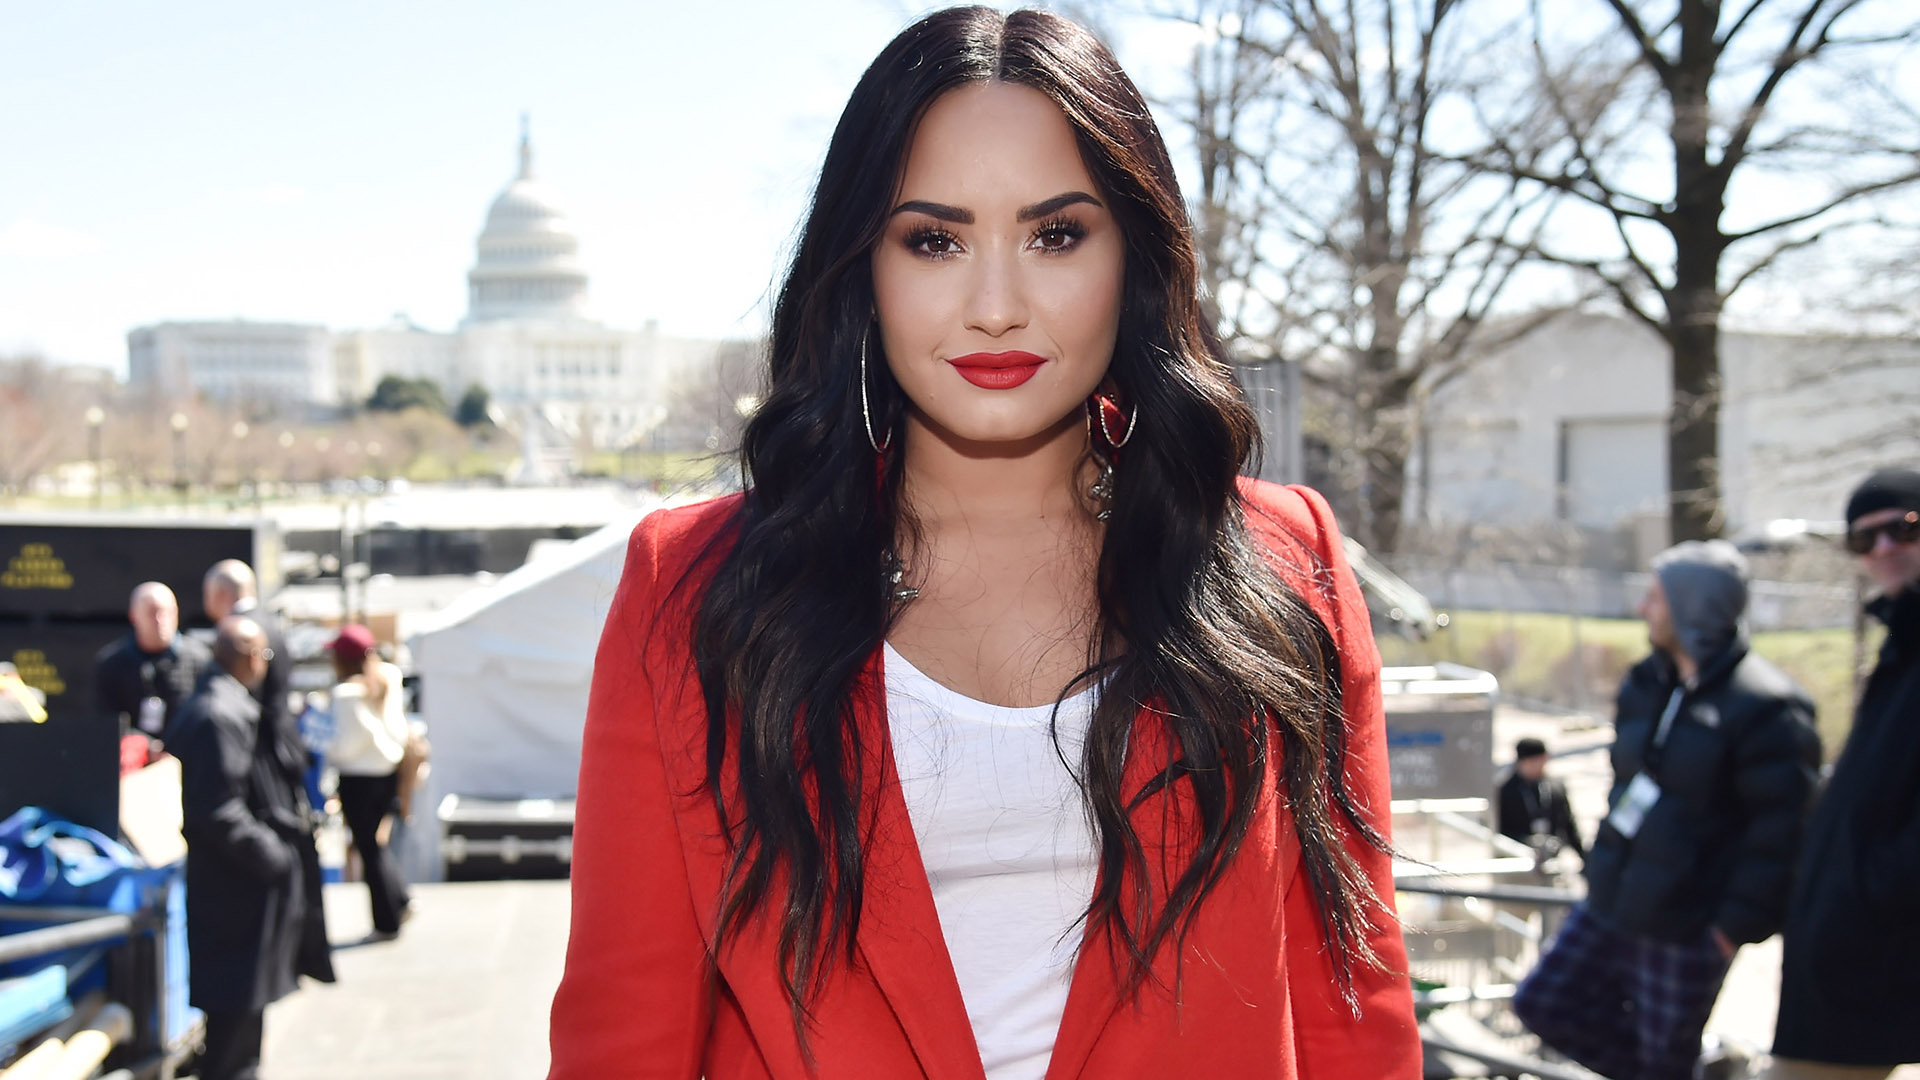 Demi Lovato's Self-Esteem Tip for Instagram - Demi has been a strong advocate for body positivity and eating disorder awareness for years. She recently spoke out about fitspo Instagram accounts and how they do more harm than good. She stresses others to workout for themselves- not to look like someone else.